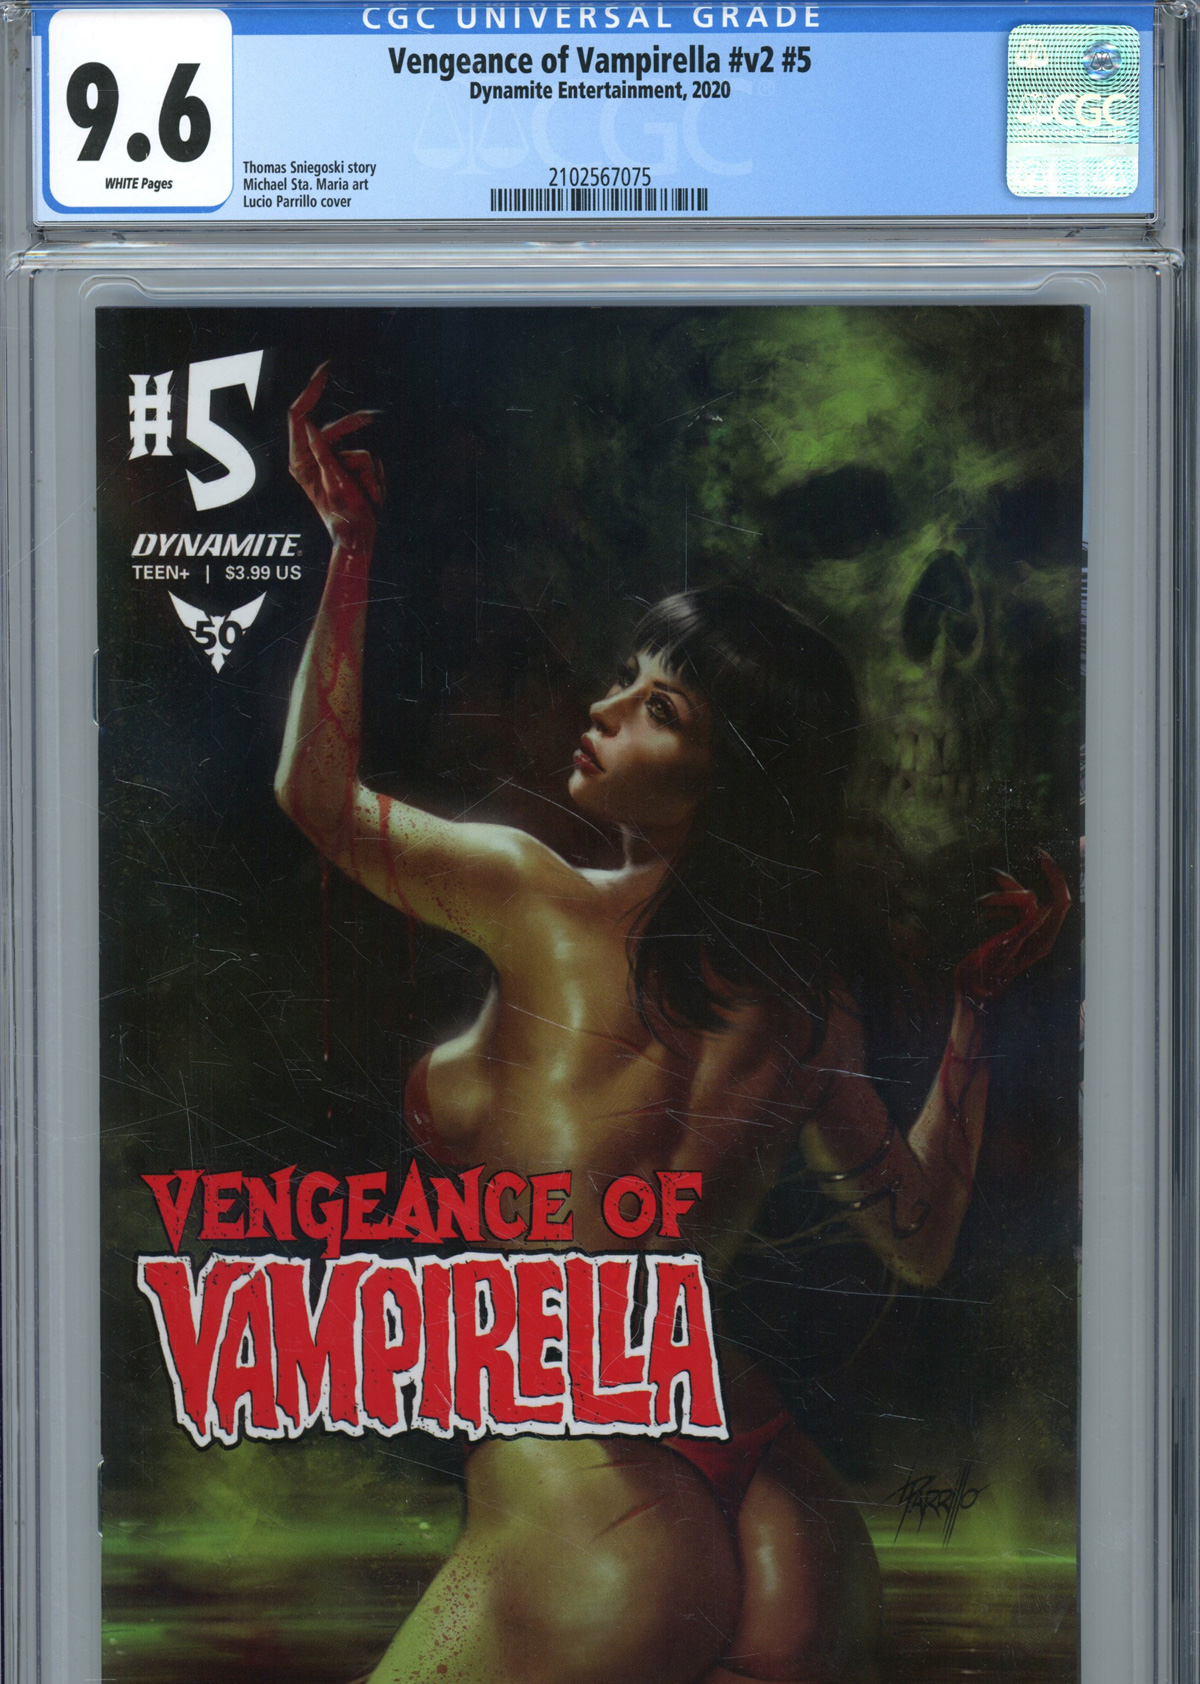 Vengeance Of Vampirella Vol 2 #5 Cover T Regular Lucio Parrillo Cover CGC Graded